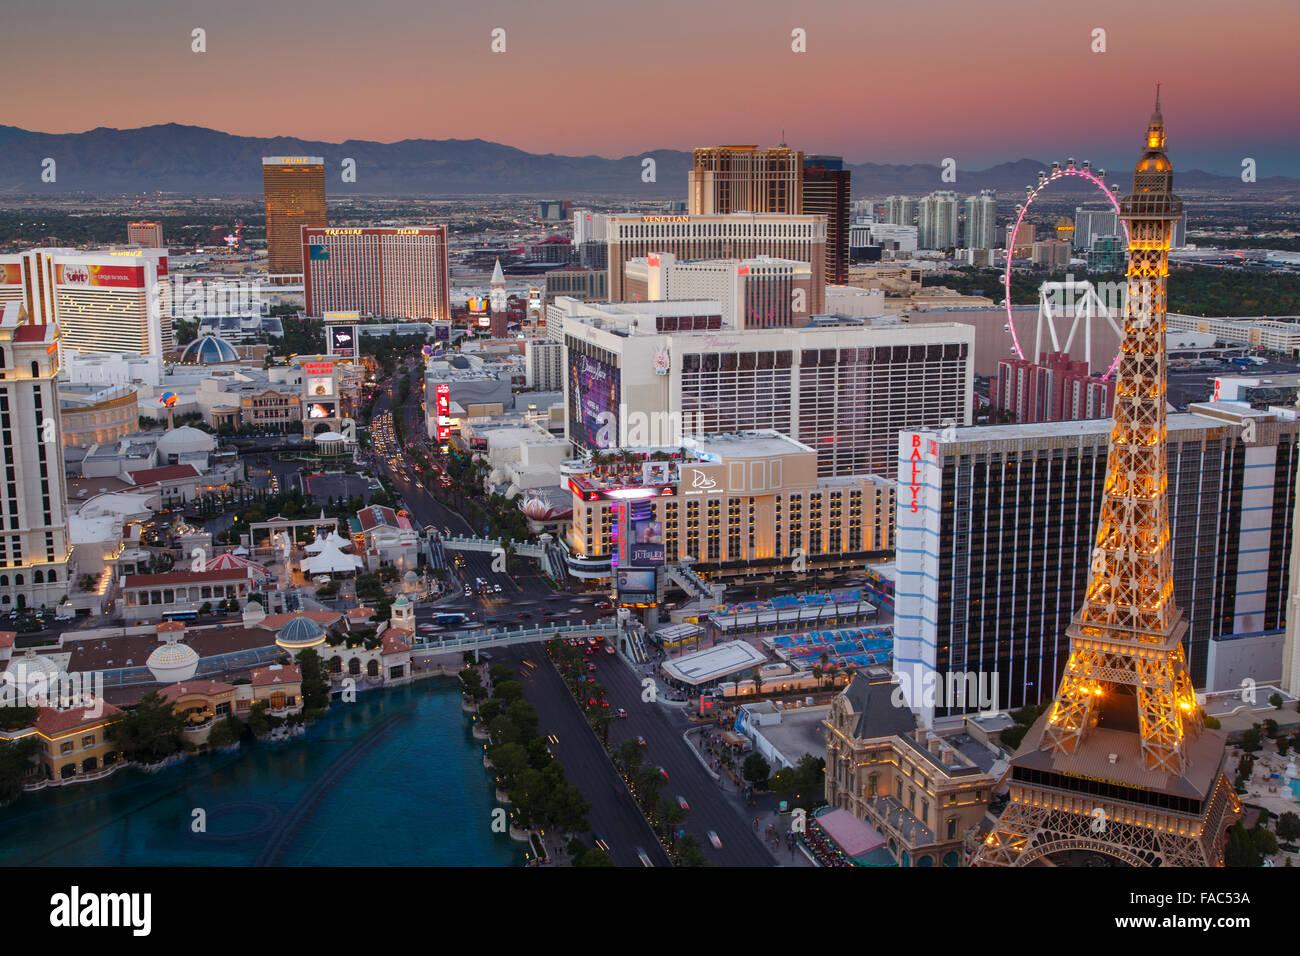 Las Vegas, Nevada. Photo Stock